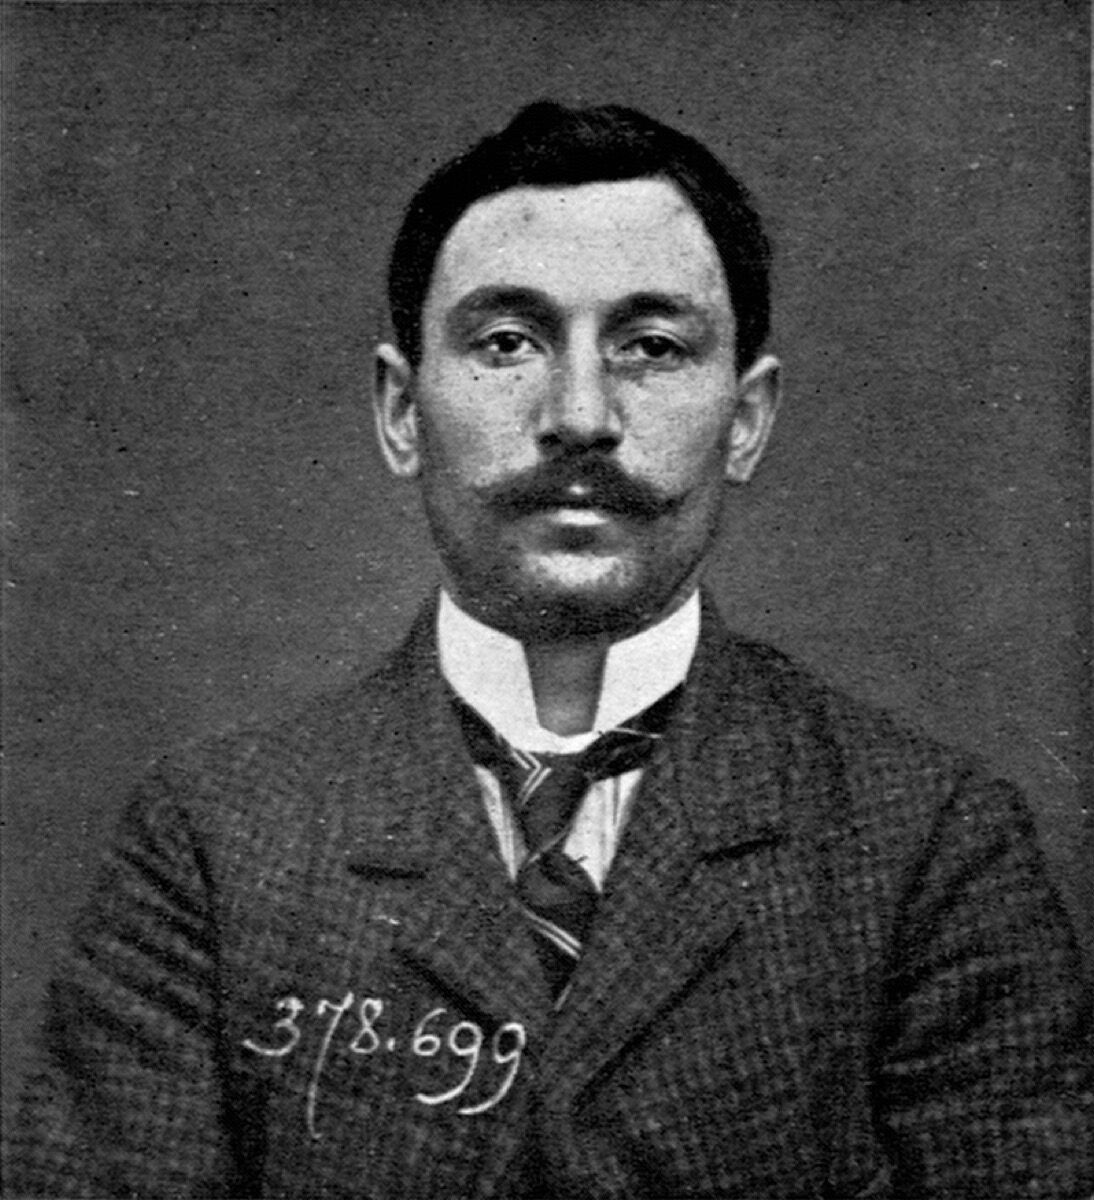 Mug shot of Vincenzo Peruggia, who was believed to have stolen the Mona Lisa in 1911. ca. 1909. Image via Wikimedia Commons.